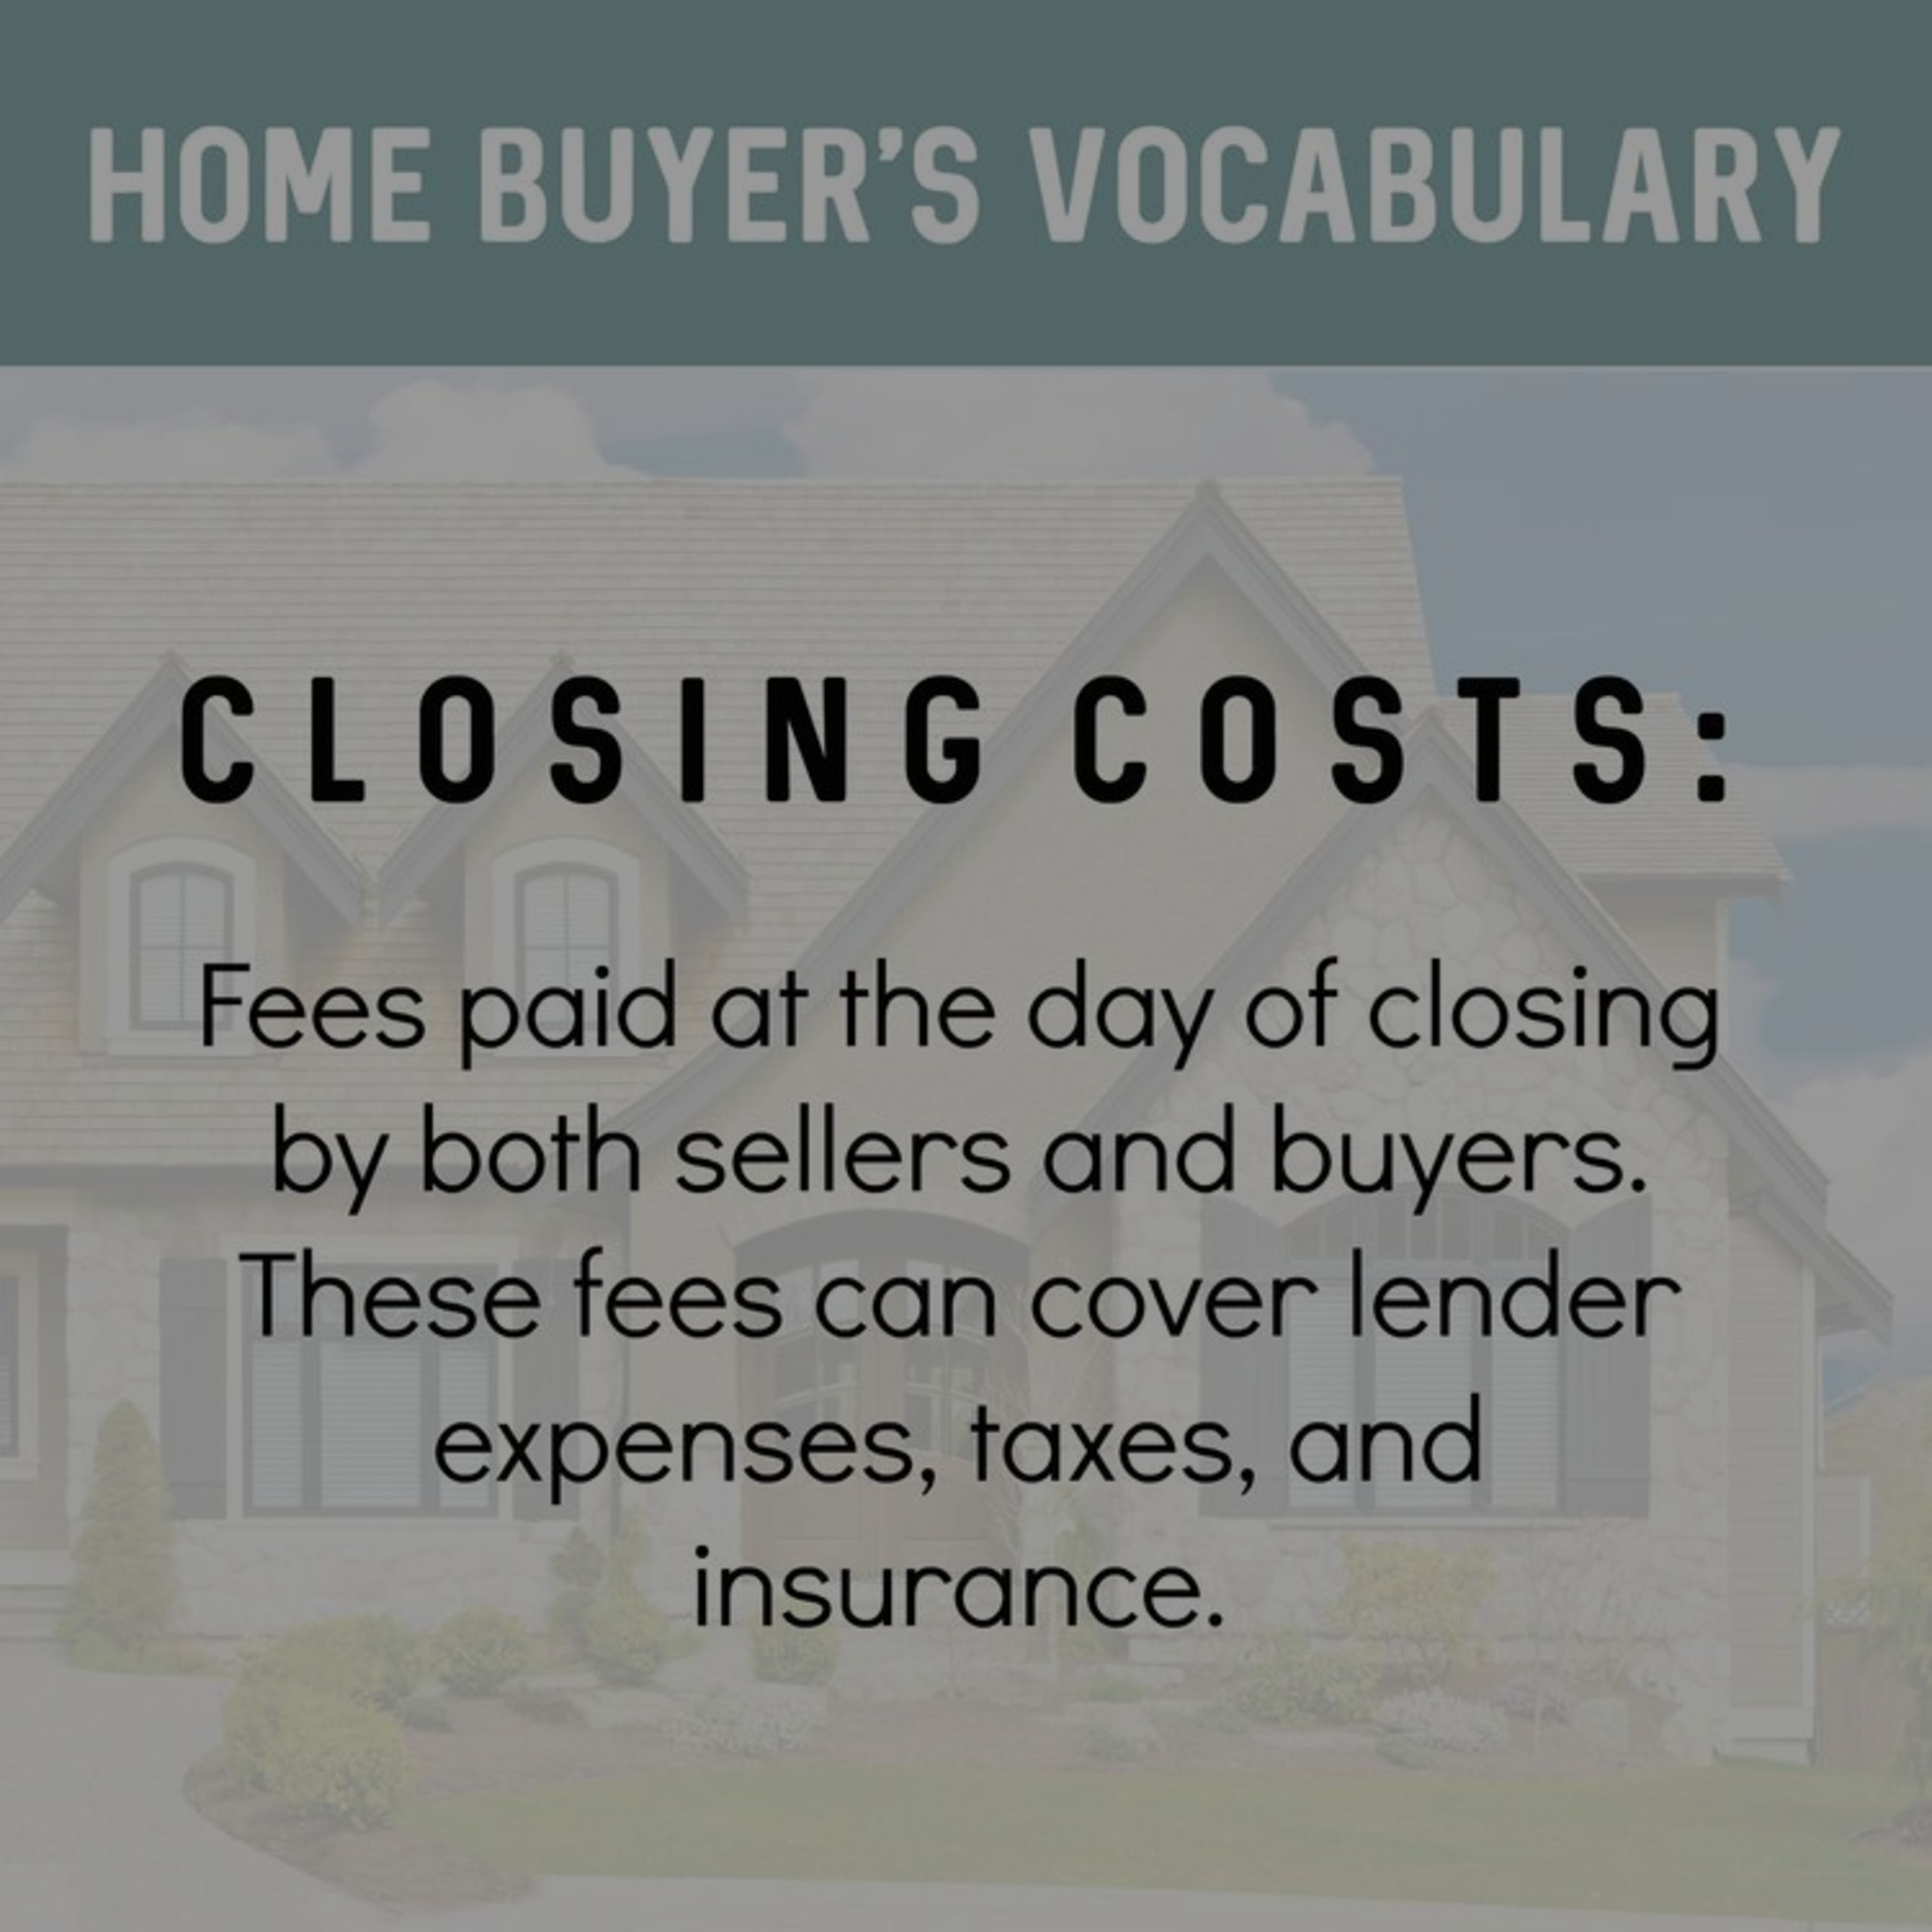 Closing costs-what are they?